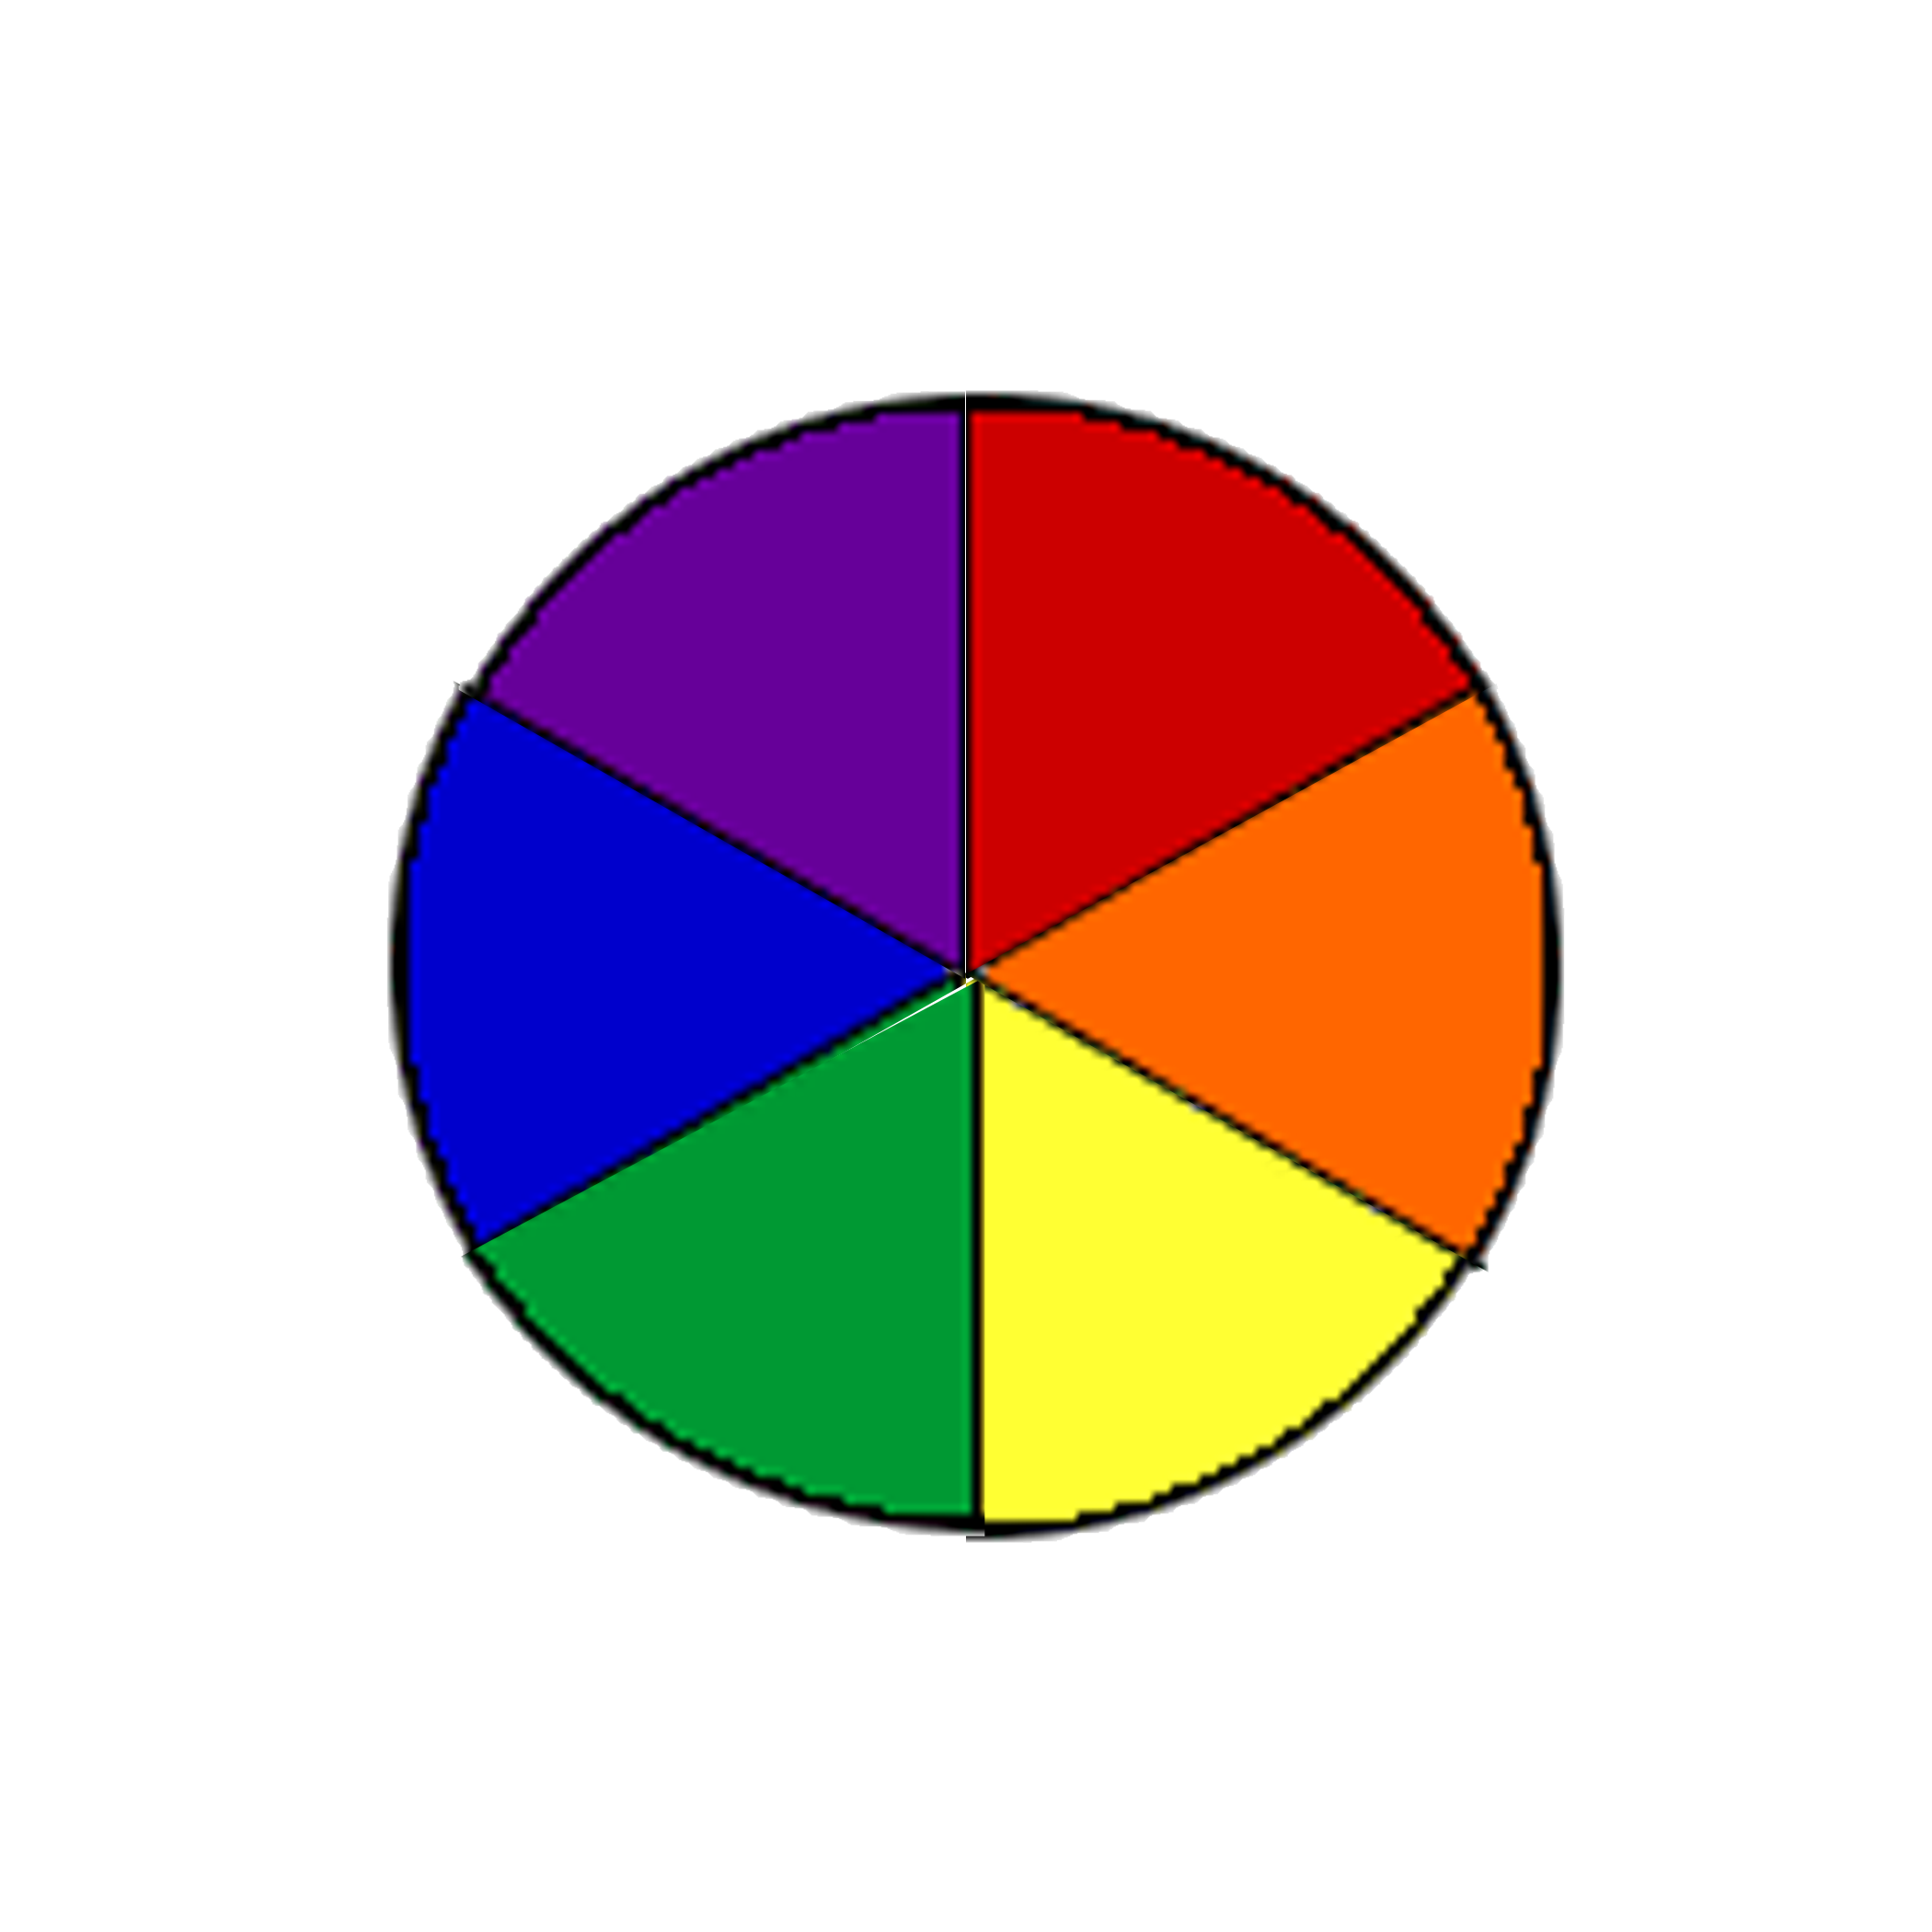 Wheel clipart circle shape. Color resources elementary lessons